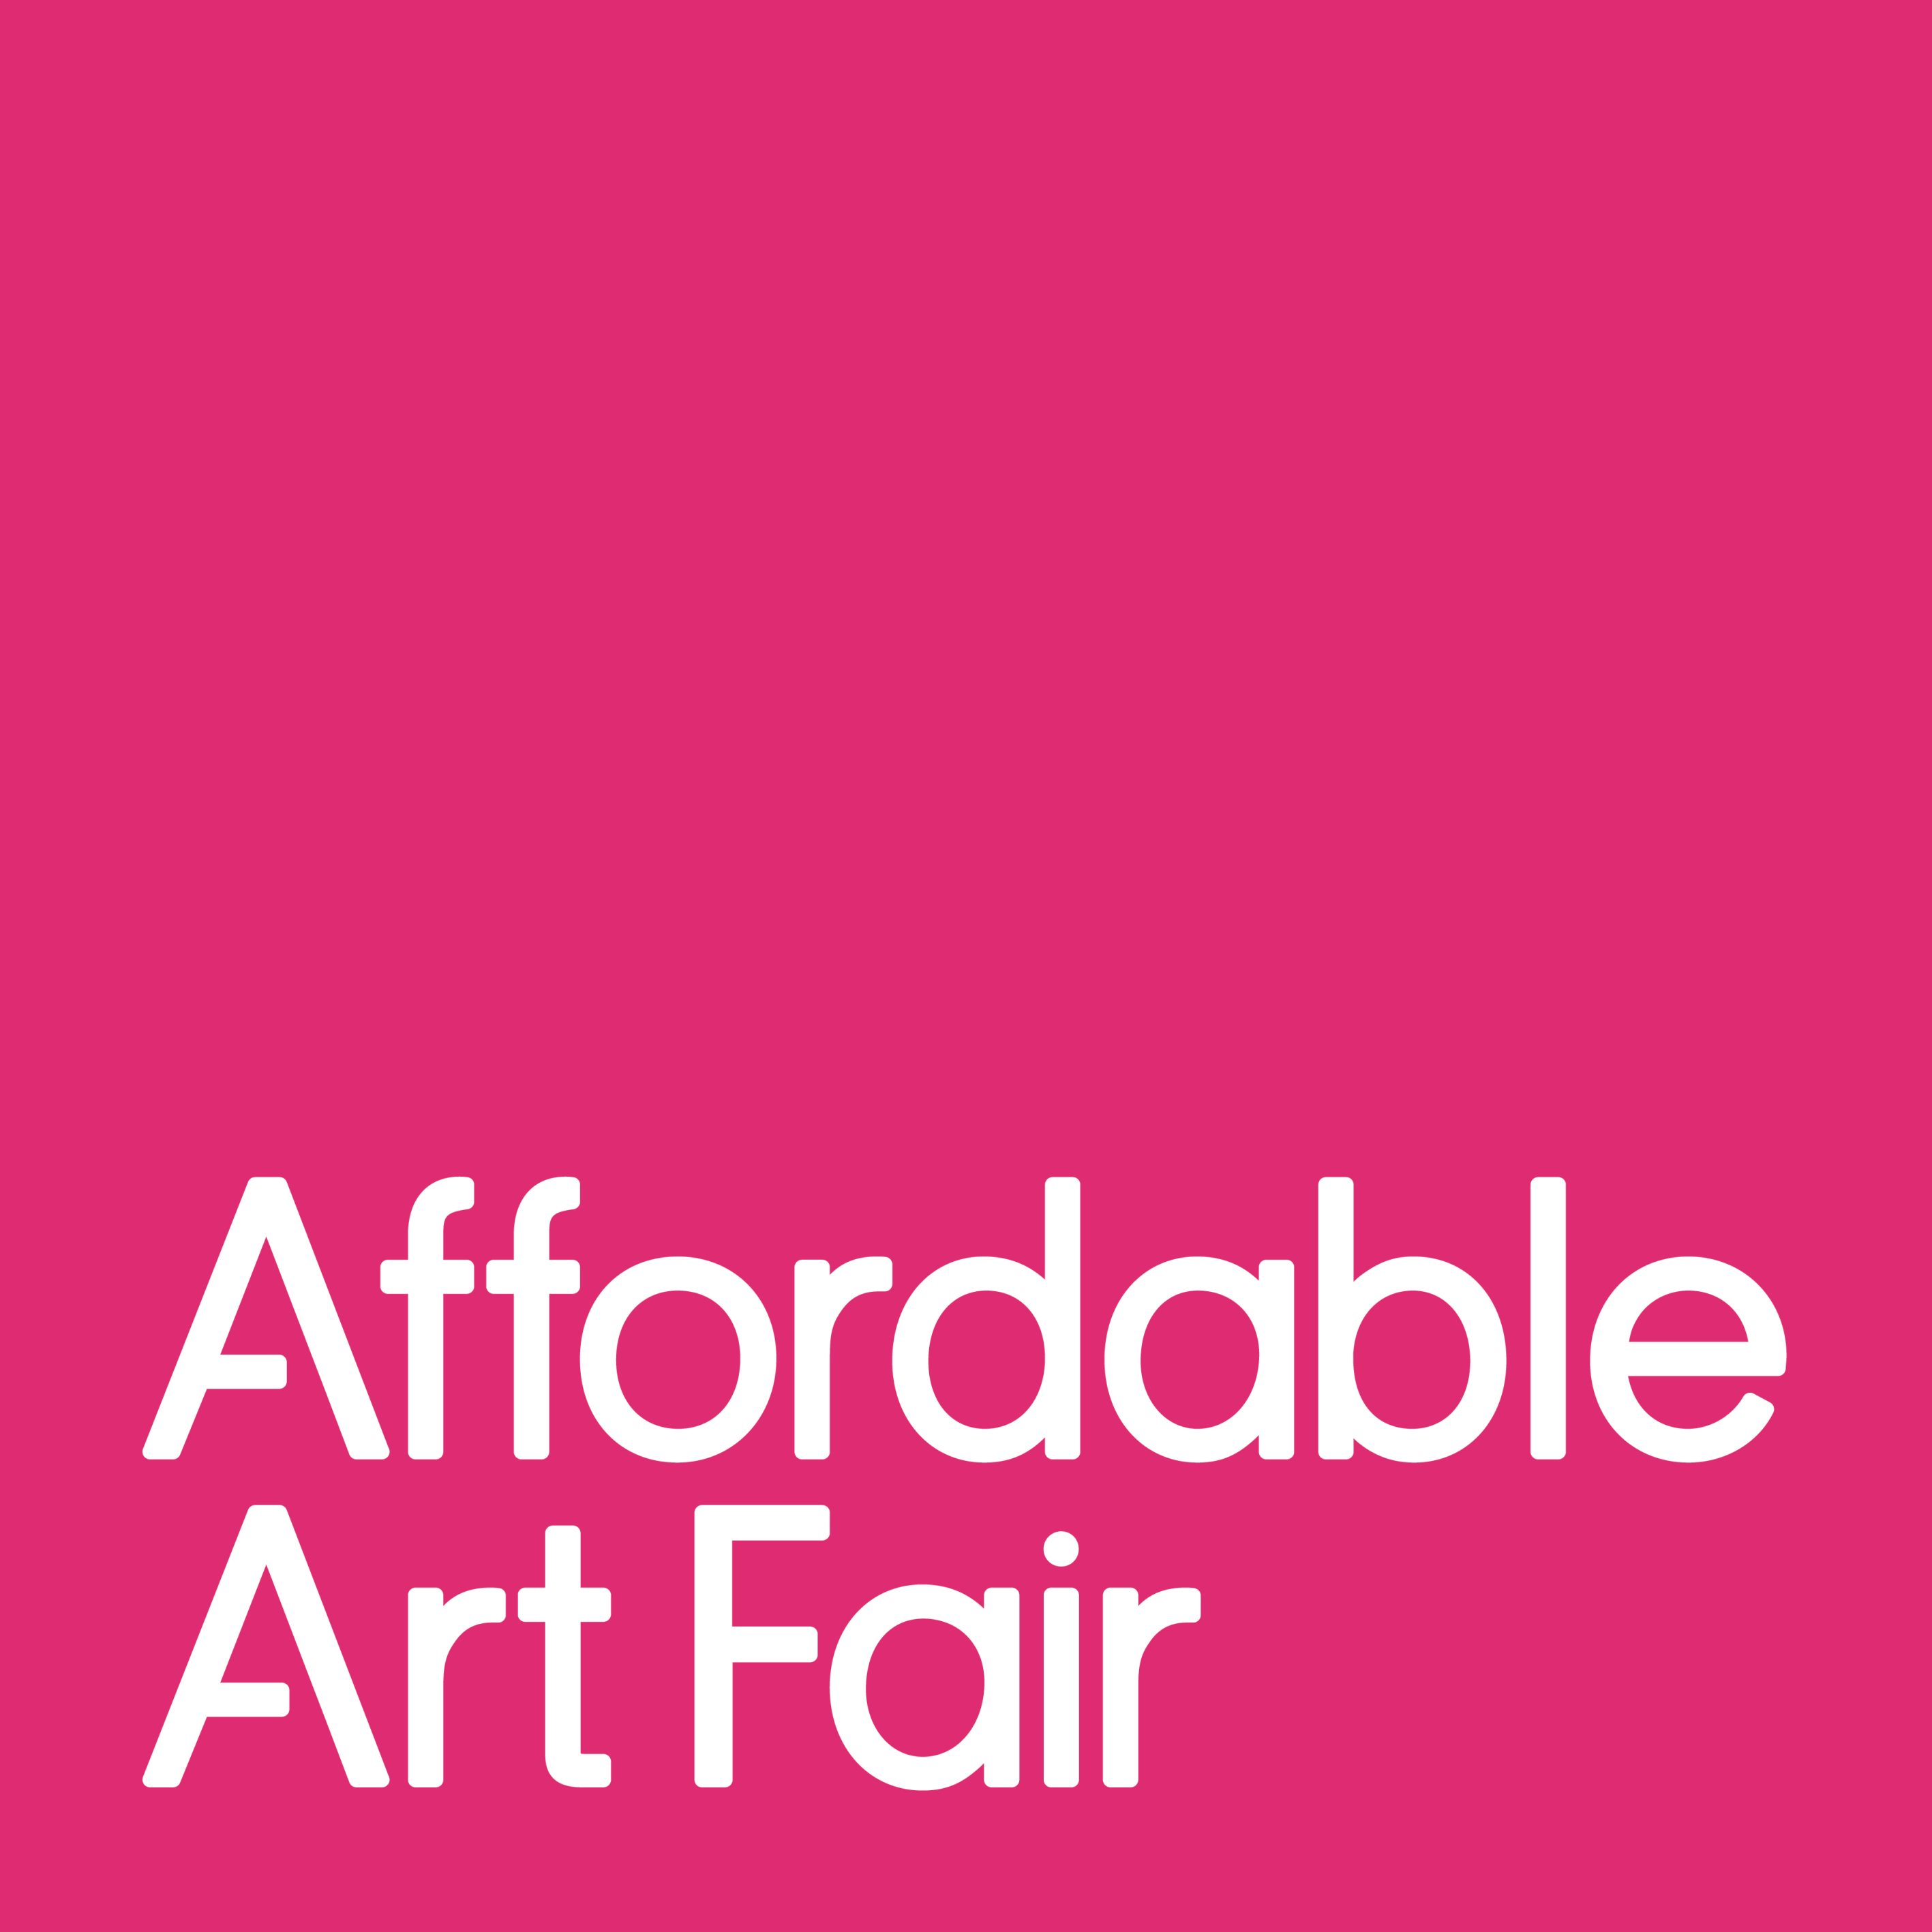 Affordable Art Fair 2015 (Milan)